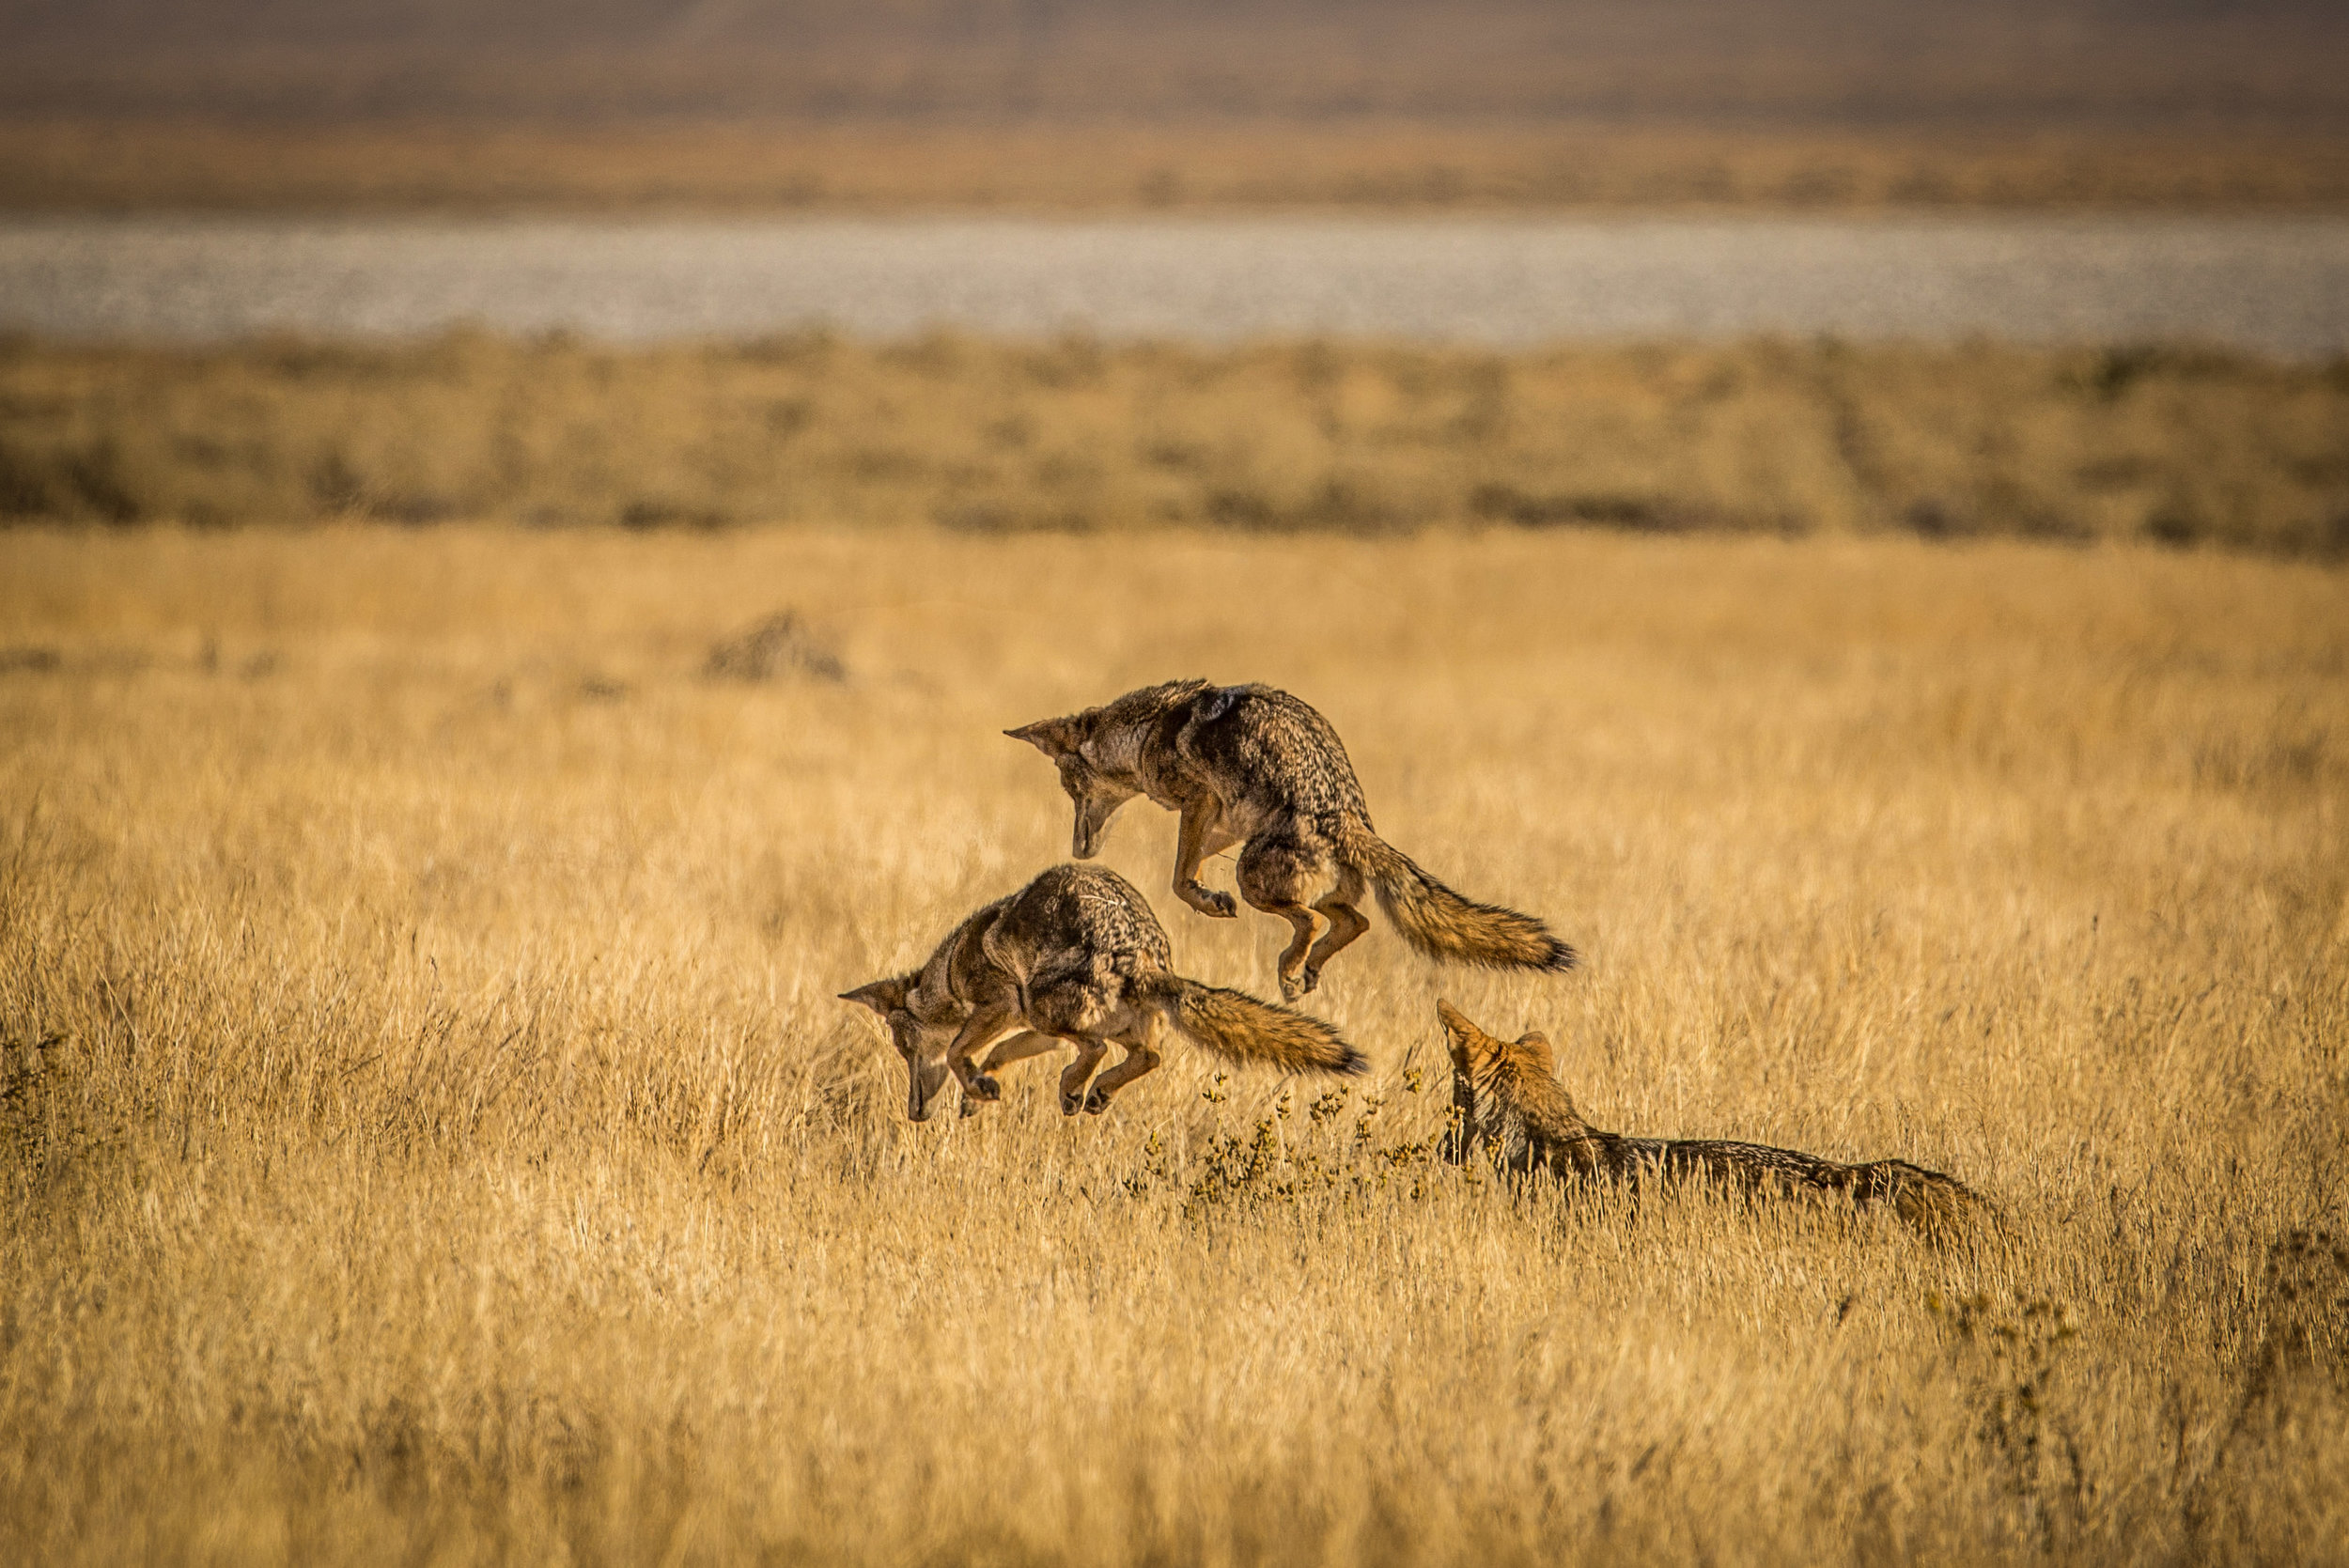 - A sequence of a coyote hunting rodents at Carrizo Plain NM. We watched him or her do this three times, with a 2 out of 3 success rate.